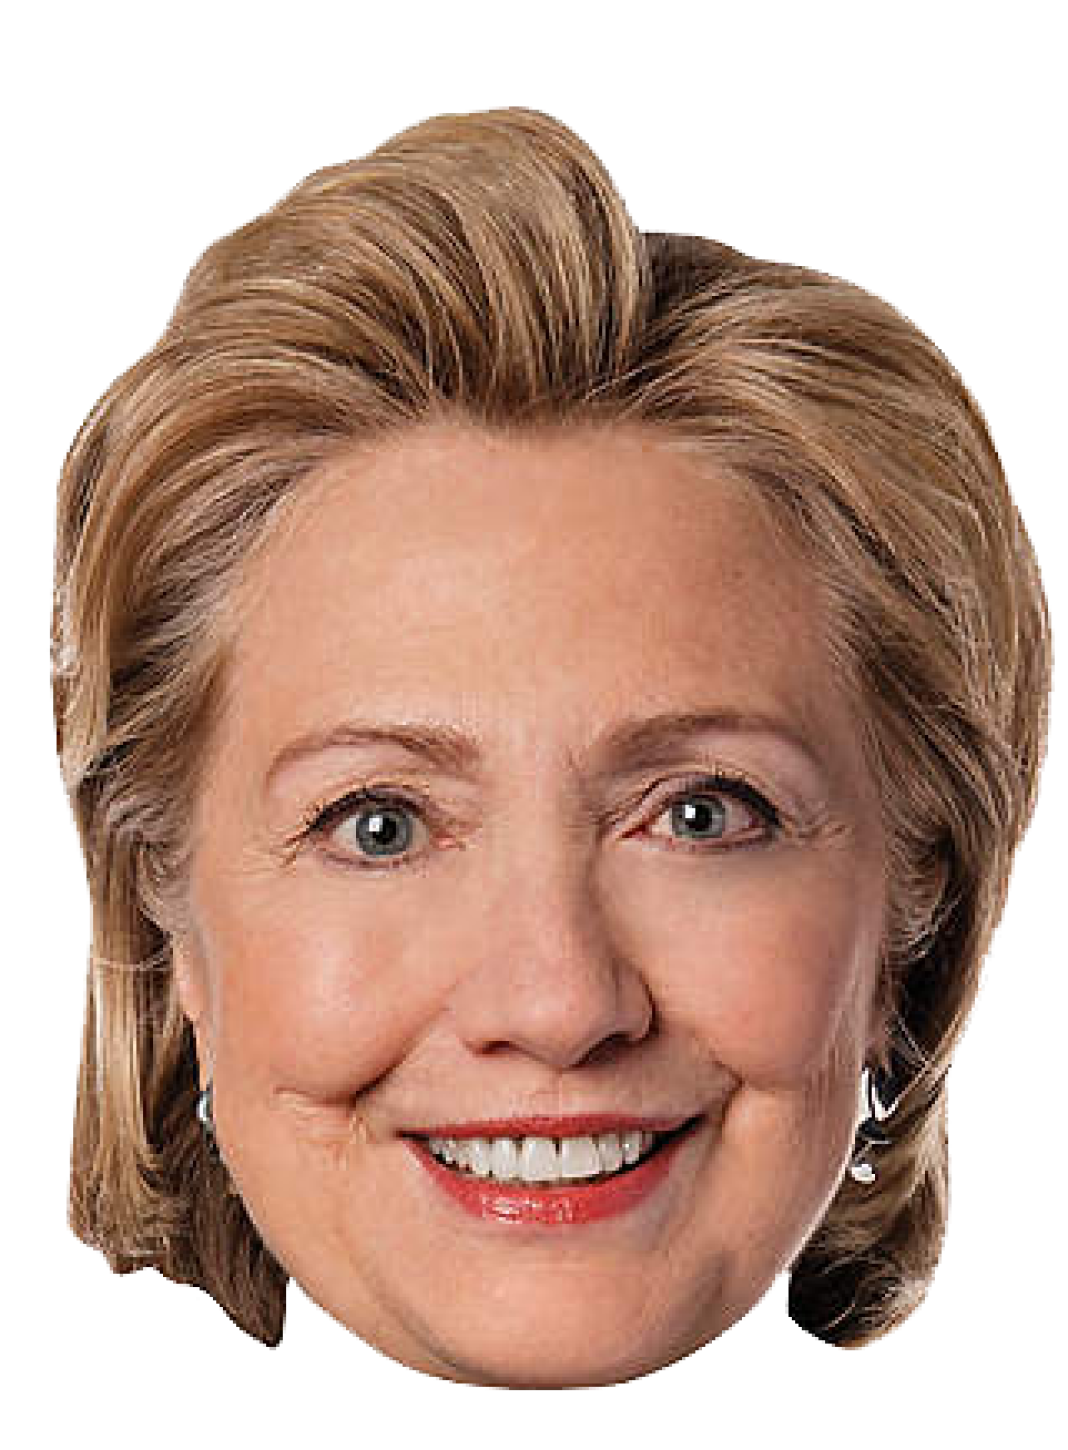 Hair United Clinton Trump Face States Hillary PNG Image